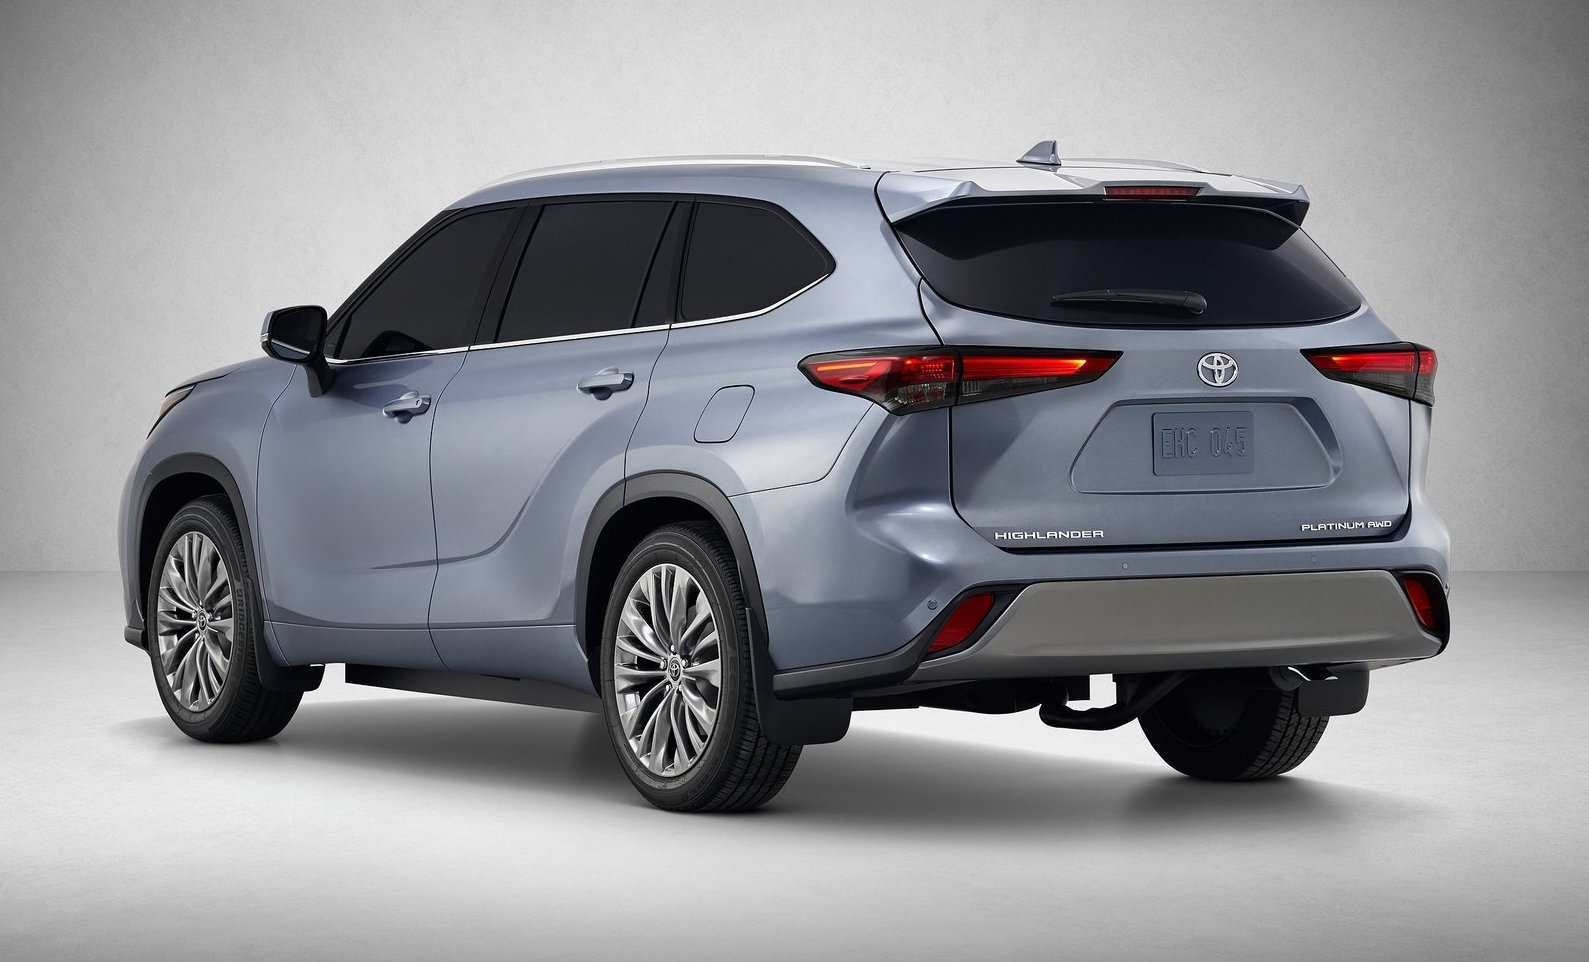 62 The Best Toyota Kluger 2020 Model Concept And Review